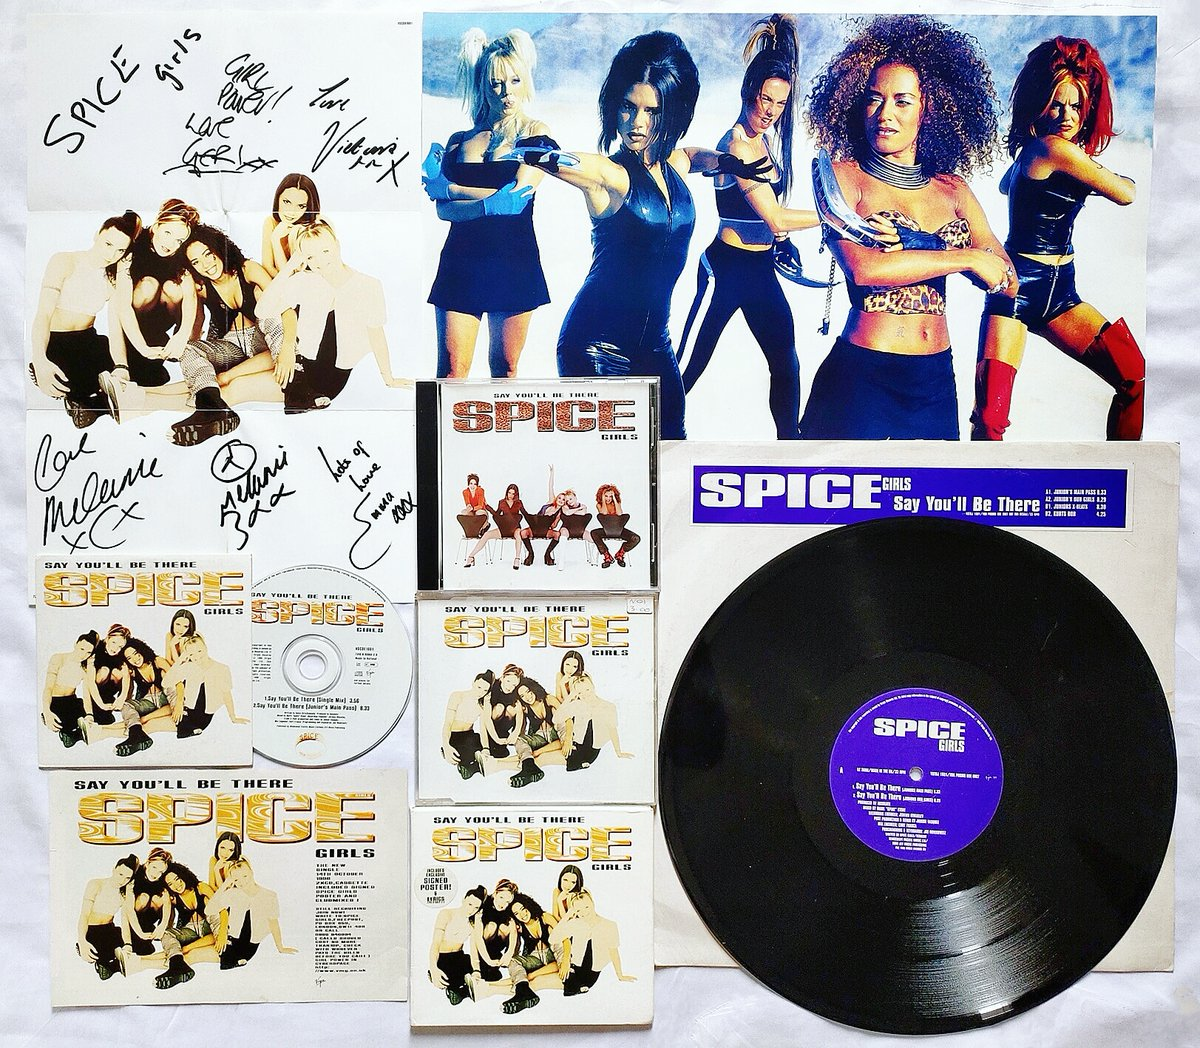 24 Years Ago @spicegirls single 'Say You'll Be There' was released on 14th October 1996. 🇬🇧✌️  #spicegirls https://t.co/txQhHzfQk1